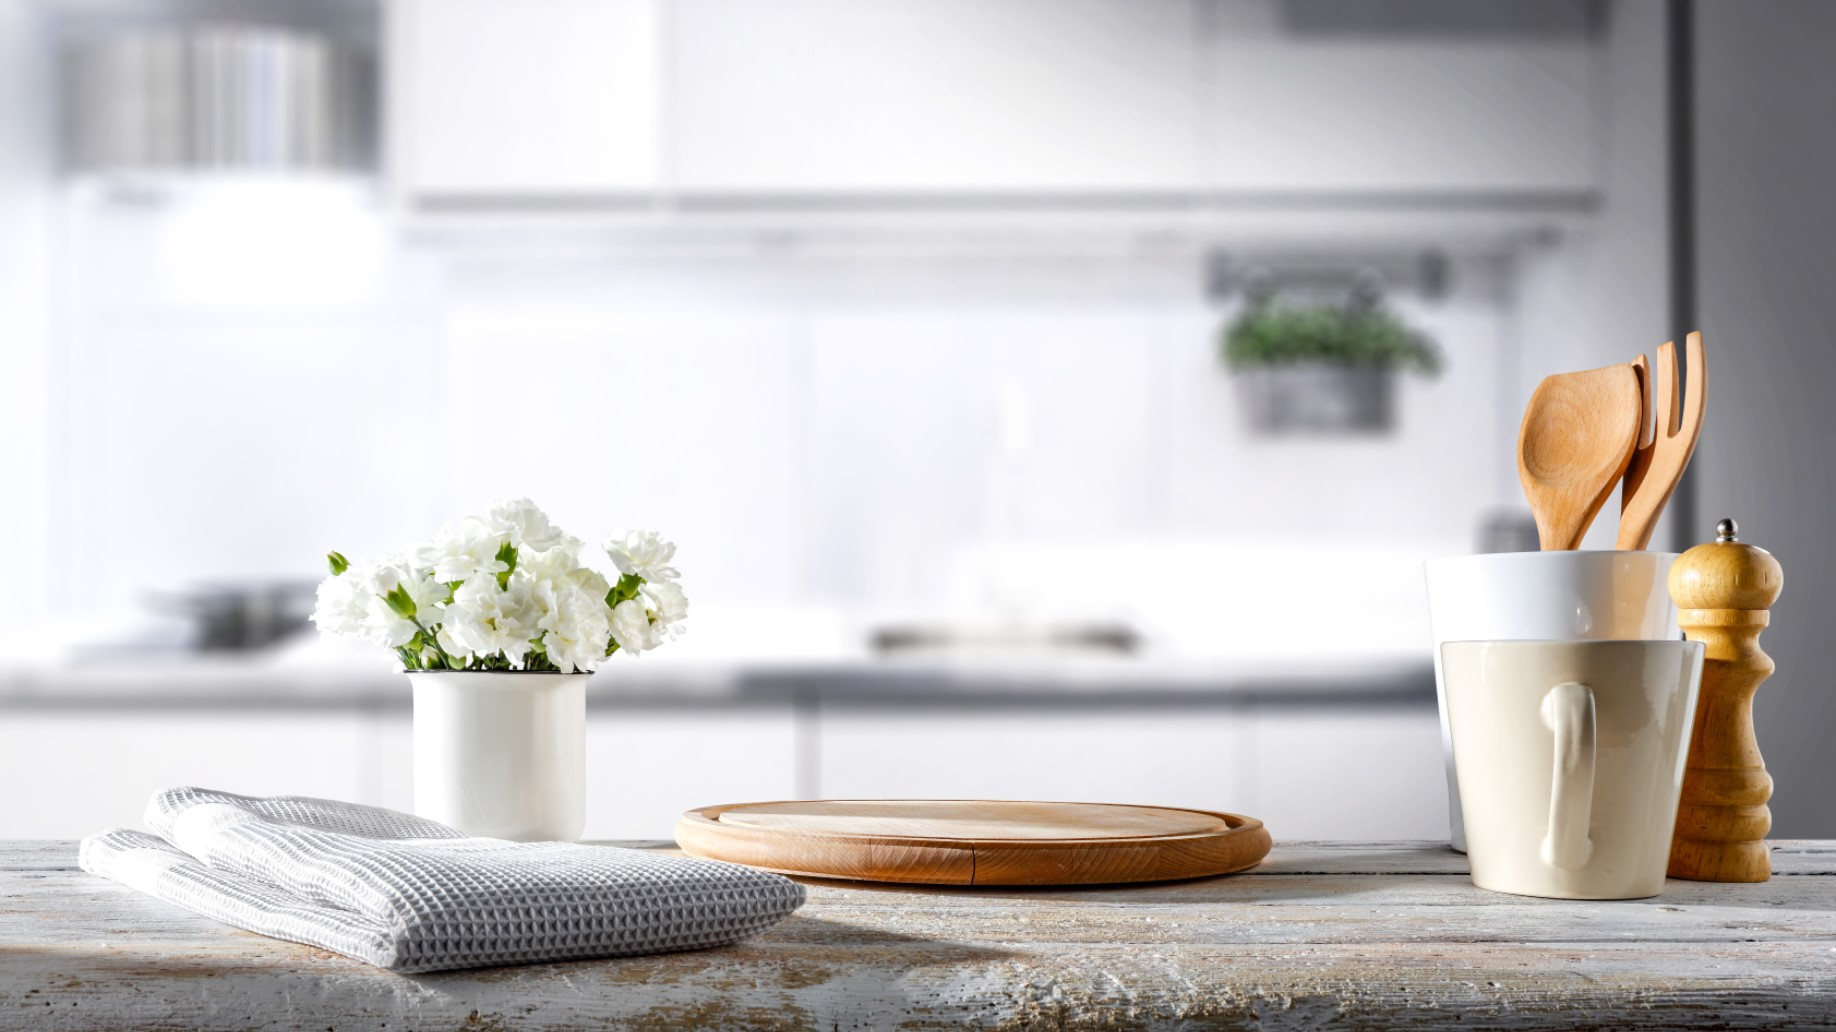 17 Kitchen Trends Taking Over 2019 Main Photo